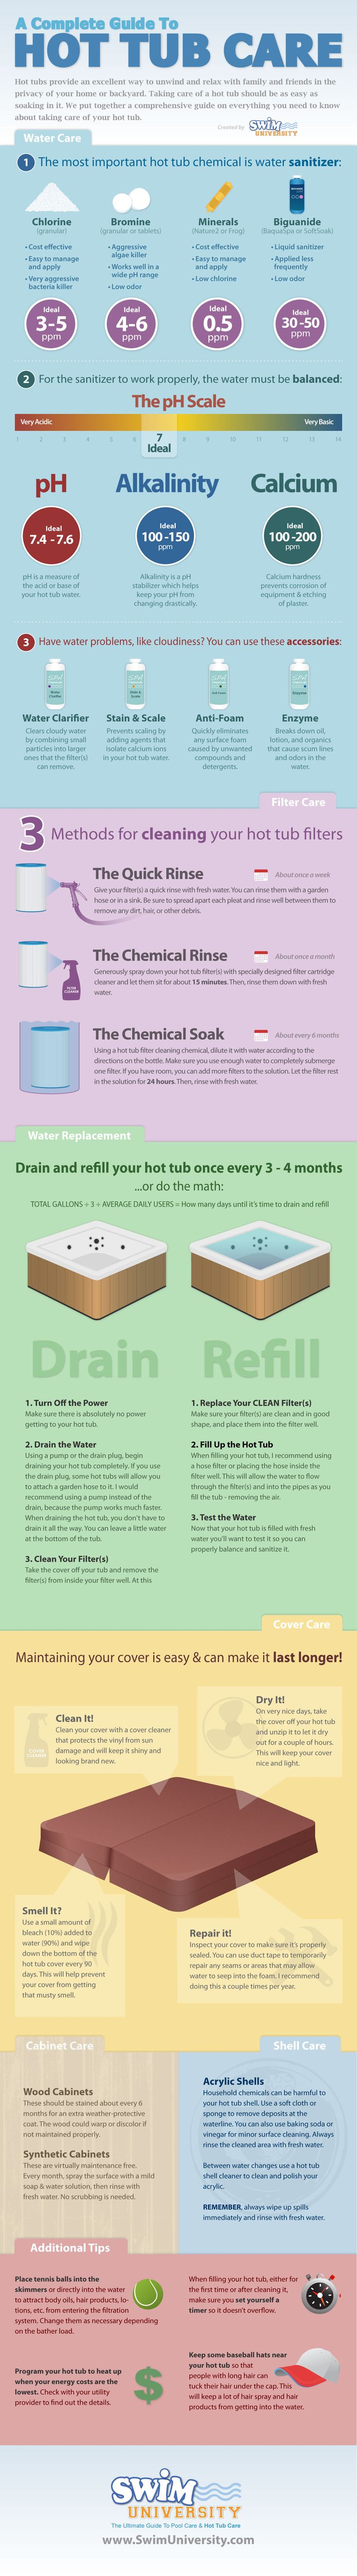 Hot Tub Care Infographic